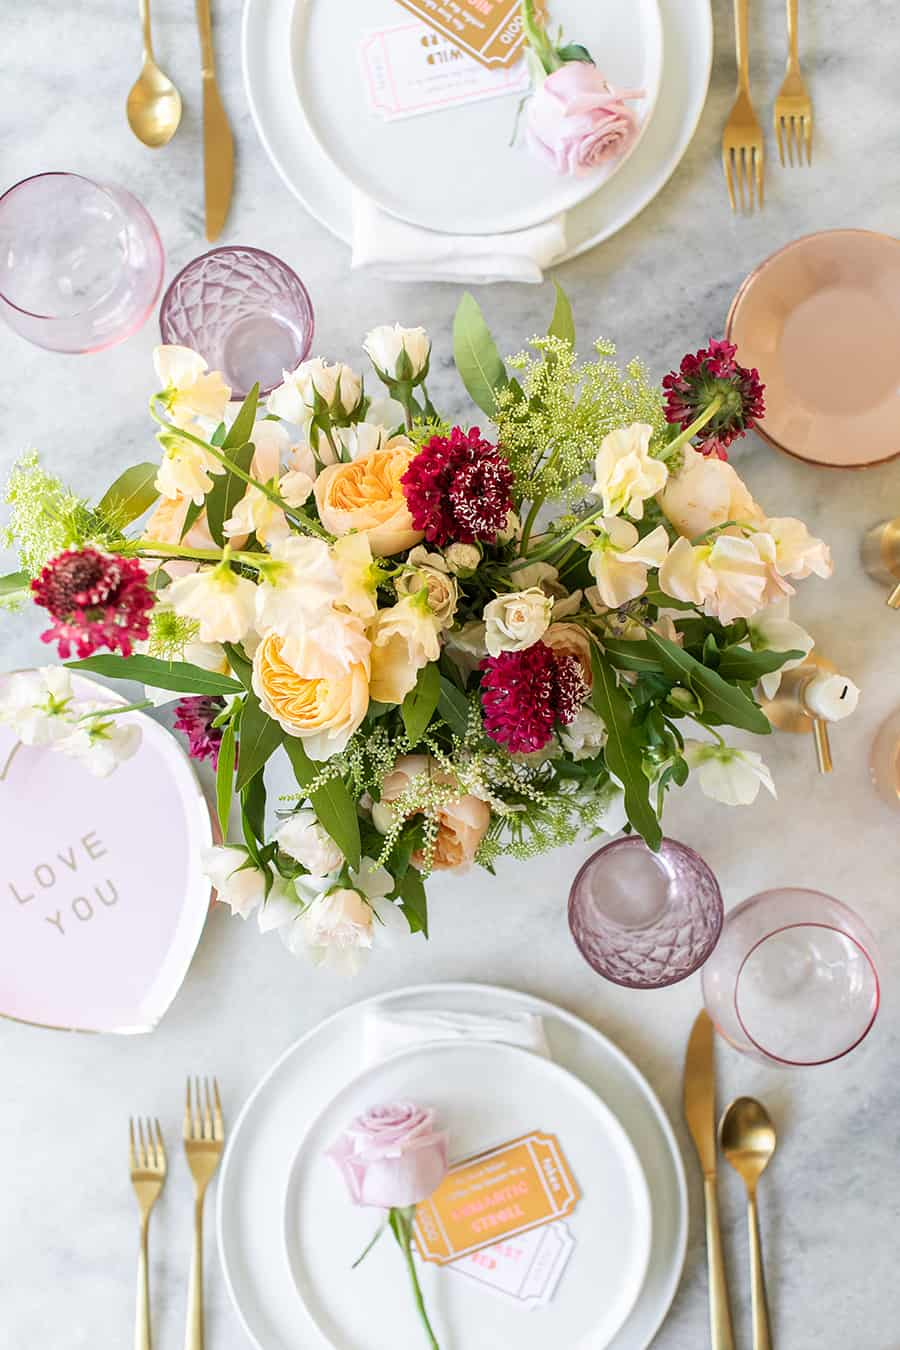 Romantic flowers in the center of a table with pink, white and gold dishes.